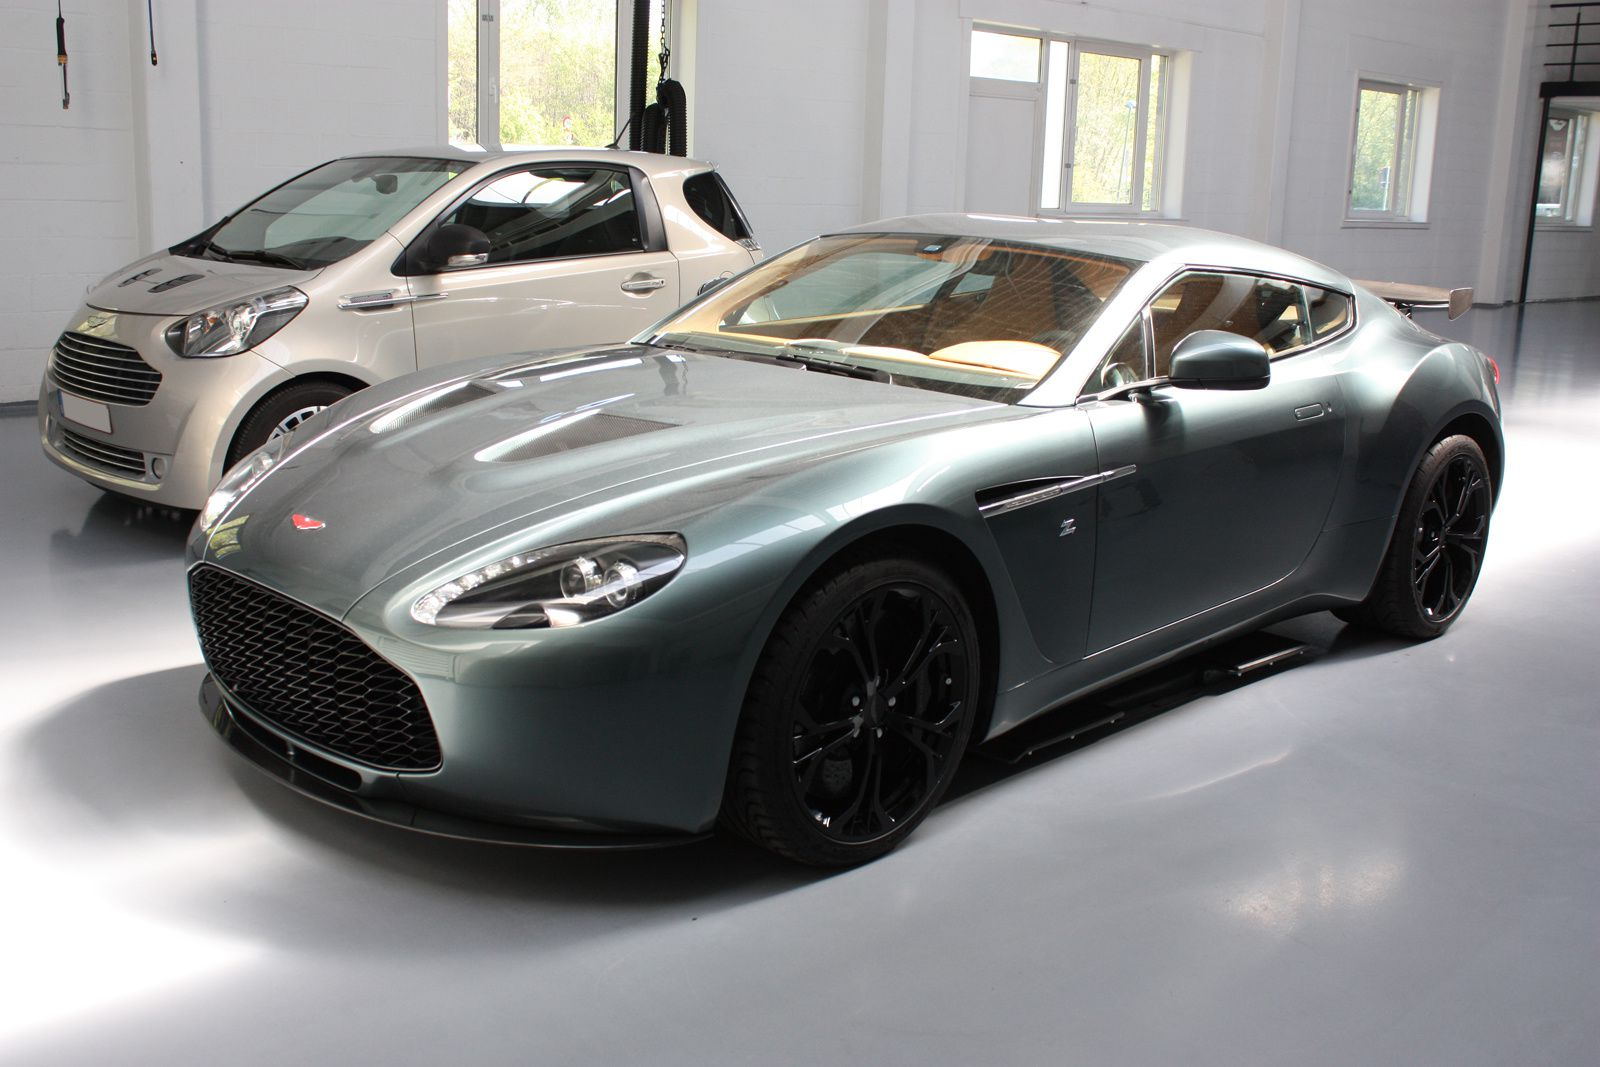 aston martin brussels v12 vantage gt3 amoc france. Black Bedroom Furniture Sets. Home Design Ideas